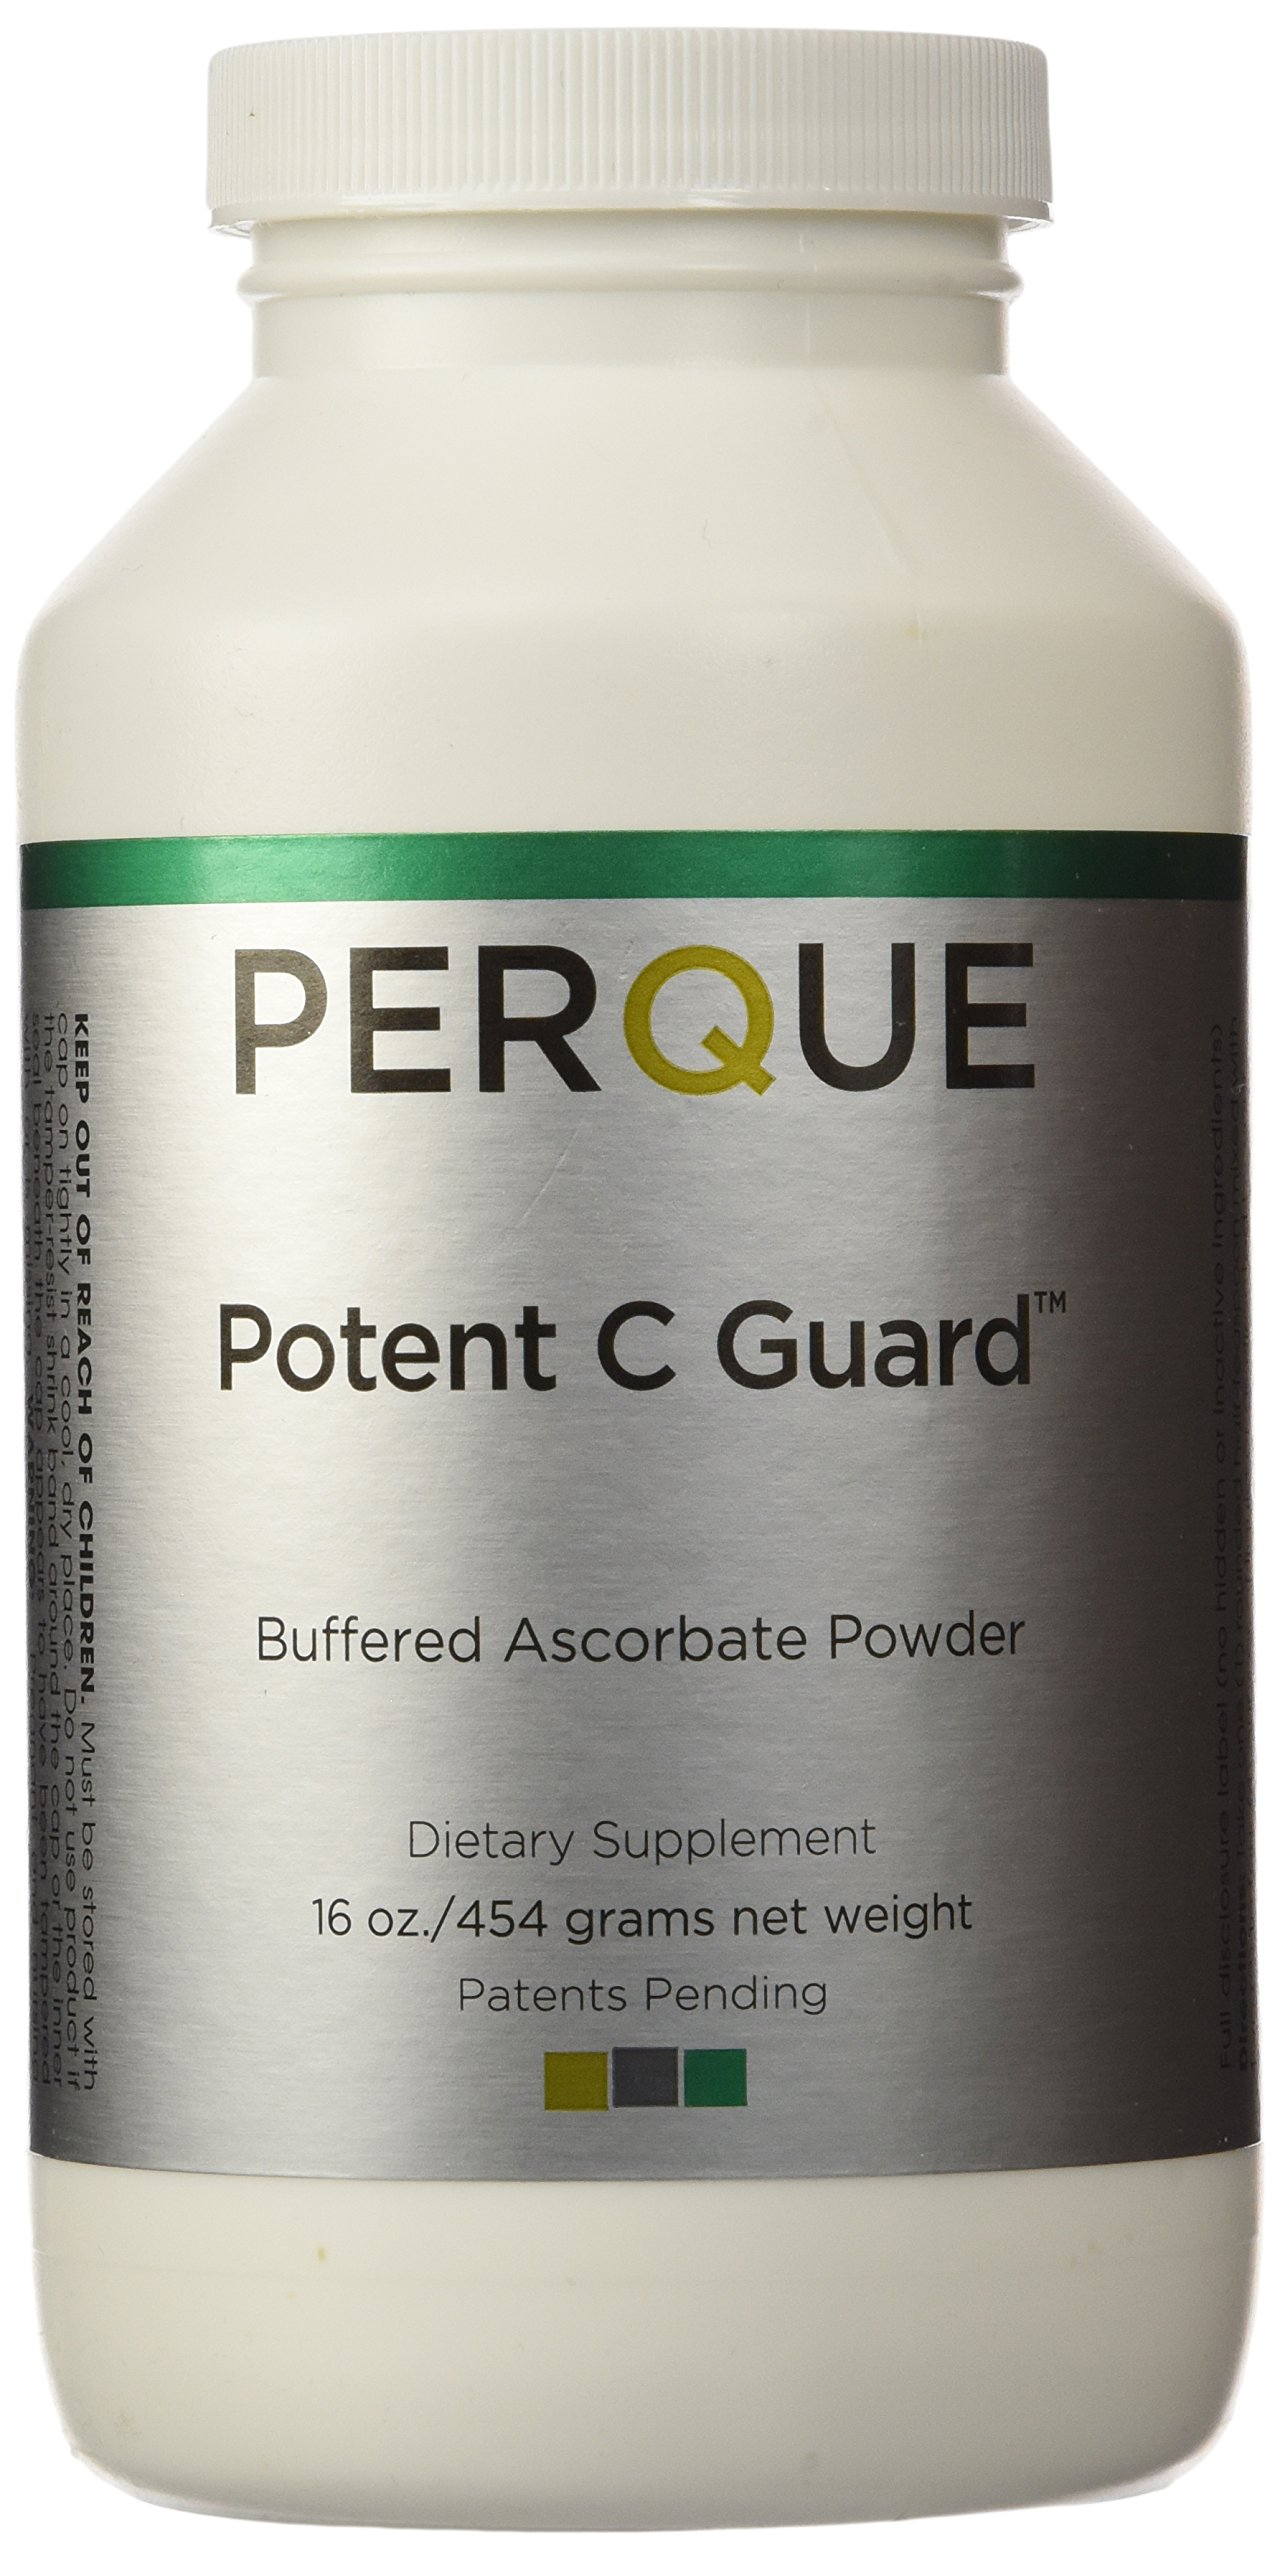 Perque Potent C Guard Powder, 16 Oz